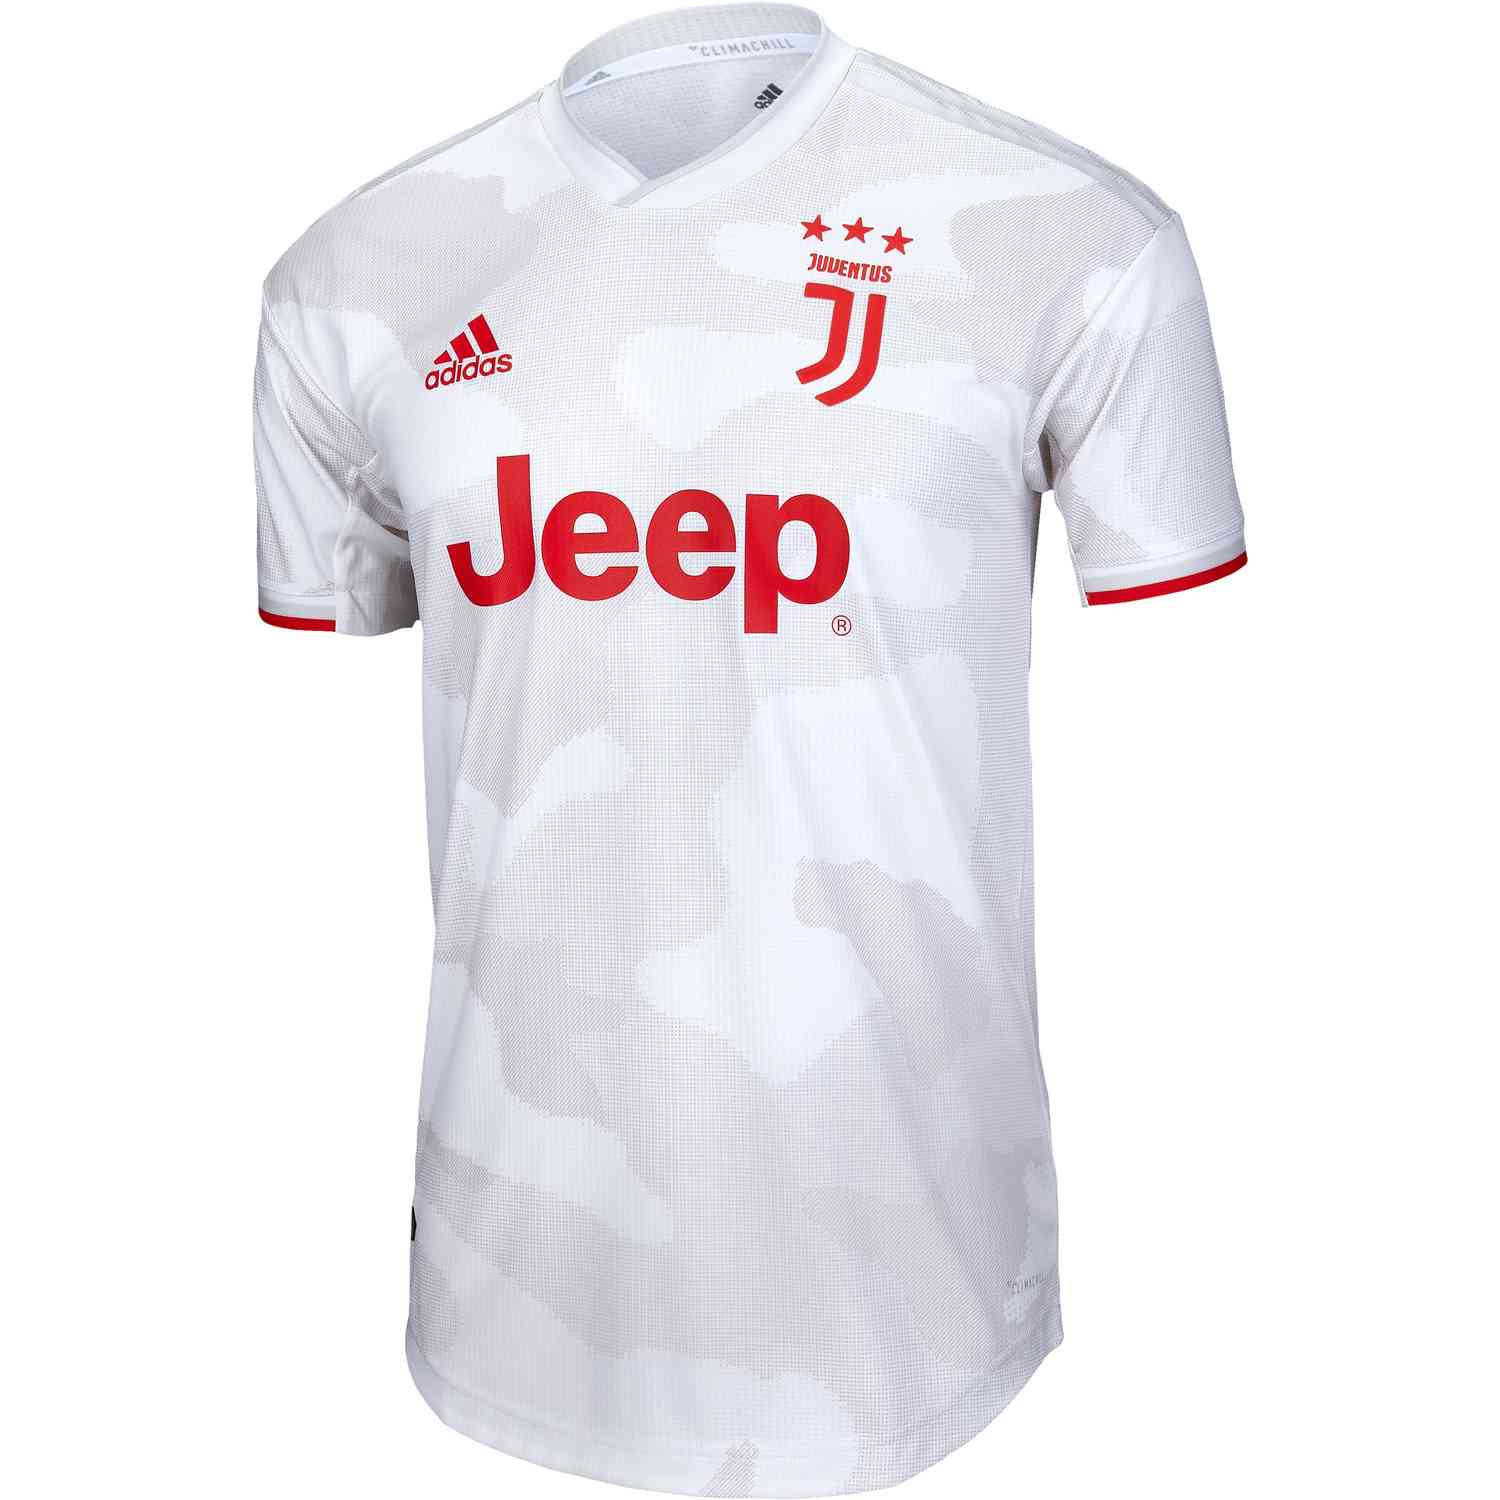 adidas juventus away authentic jersey 2019 20 soccerpro adidas juventus away authentic jersey 2019 20